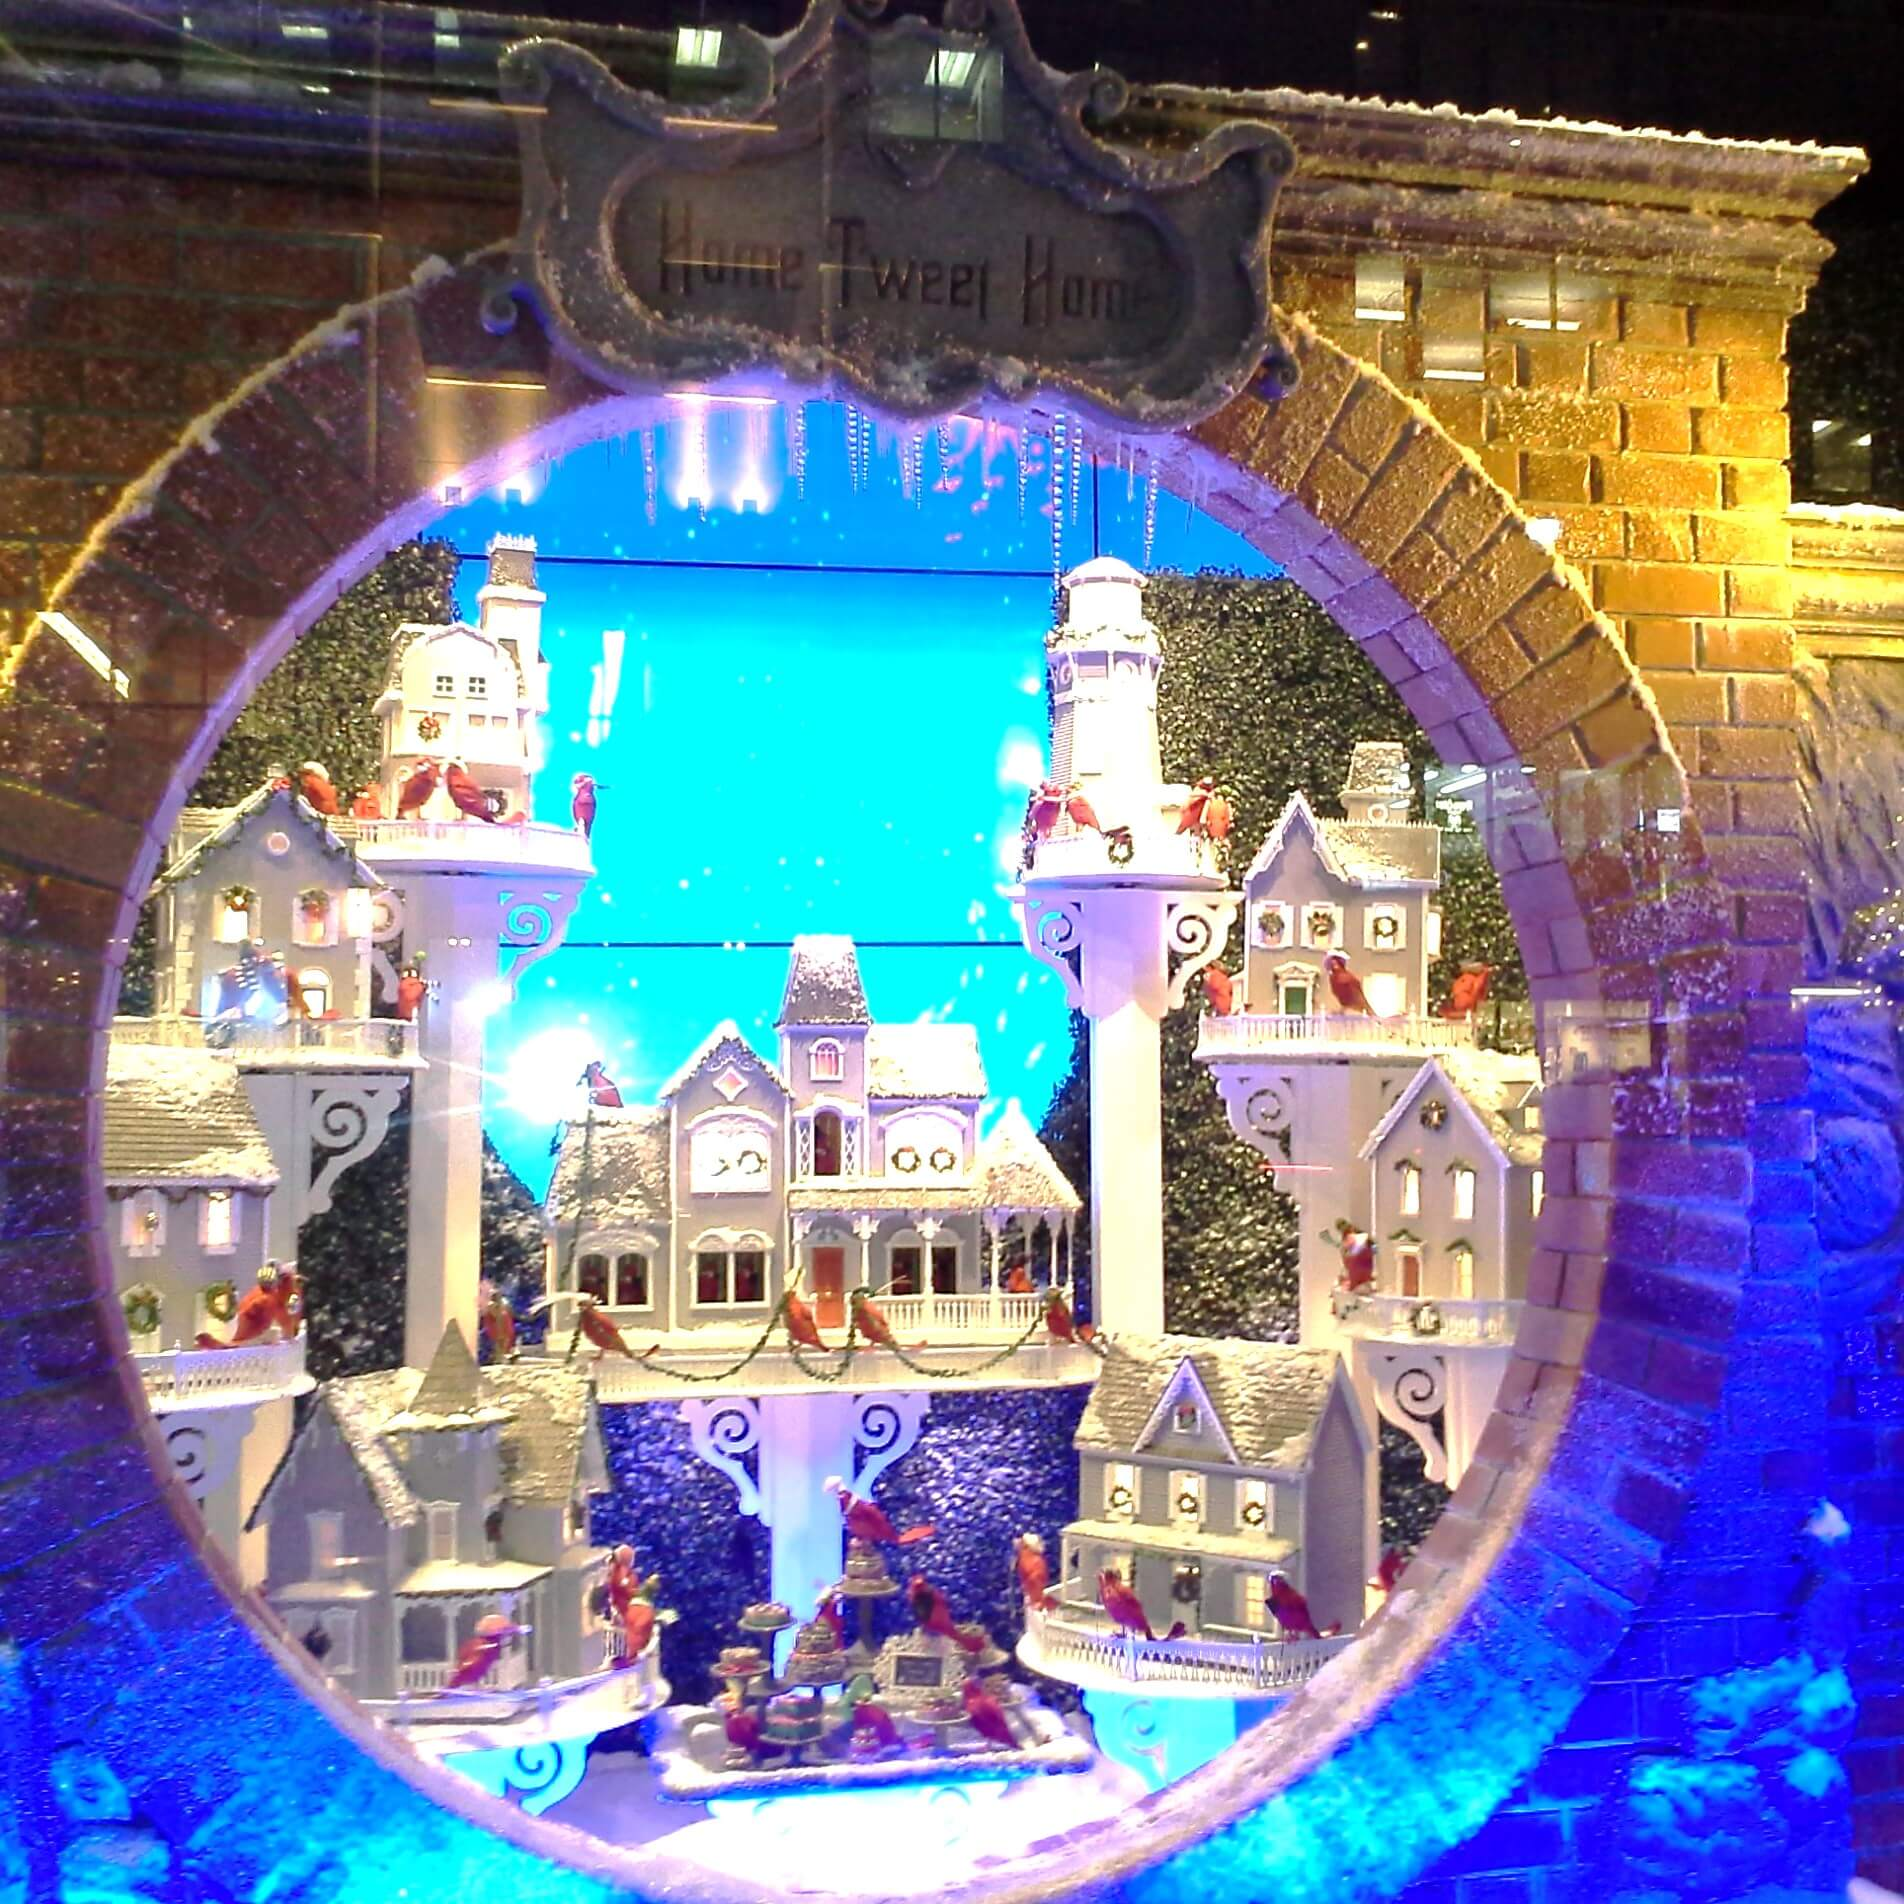 Lord and Taylor holiday window, Home Tweet Home